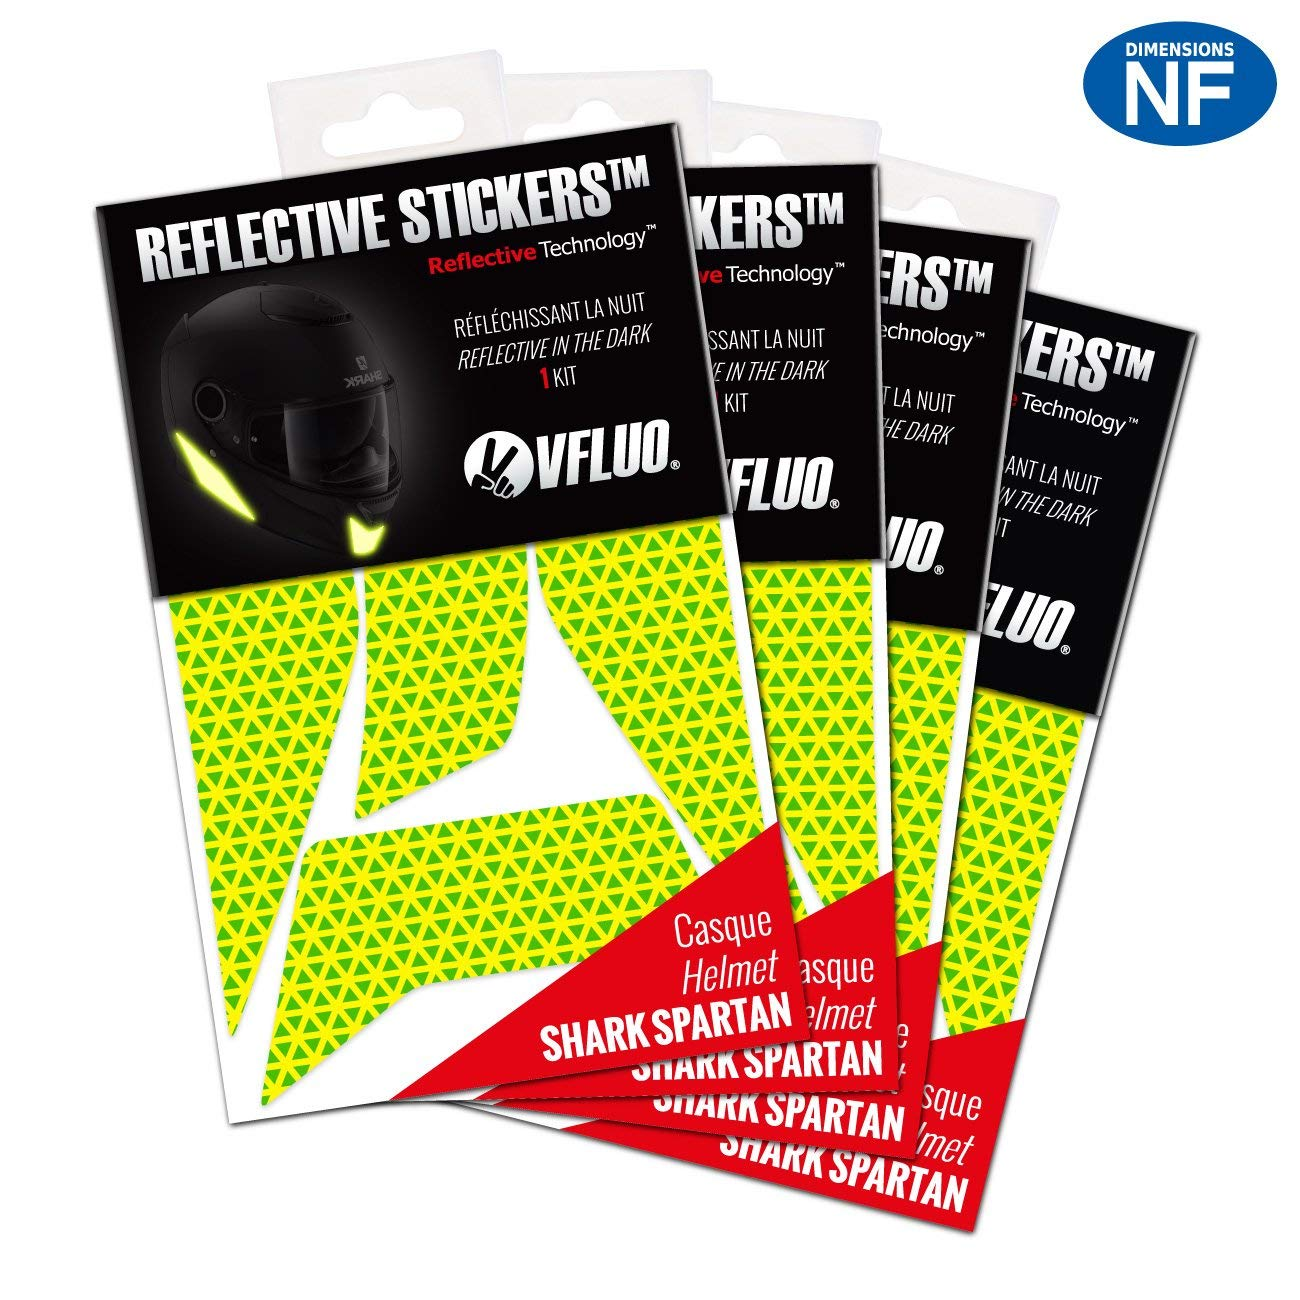 VFLUO SPARTAN. (Set of 4) retro reflective 4 stickers kit made for SHARK SPARTAN and adaptable to all helmets. 3M Technology. Fluo Yellow